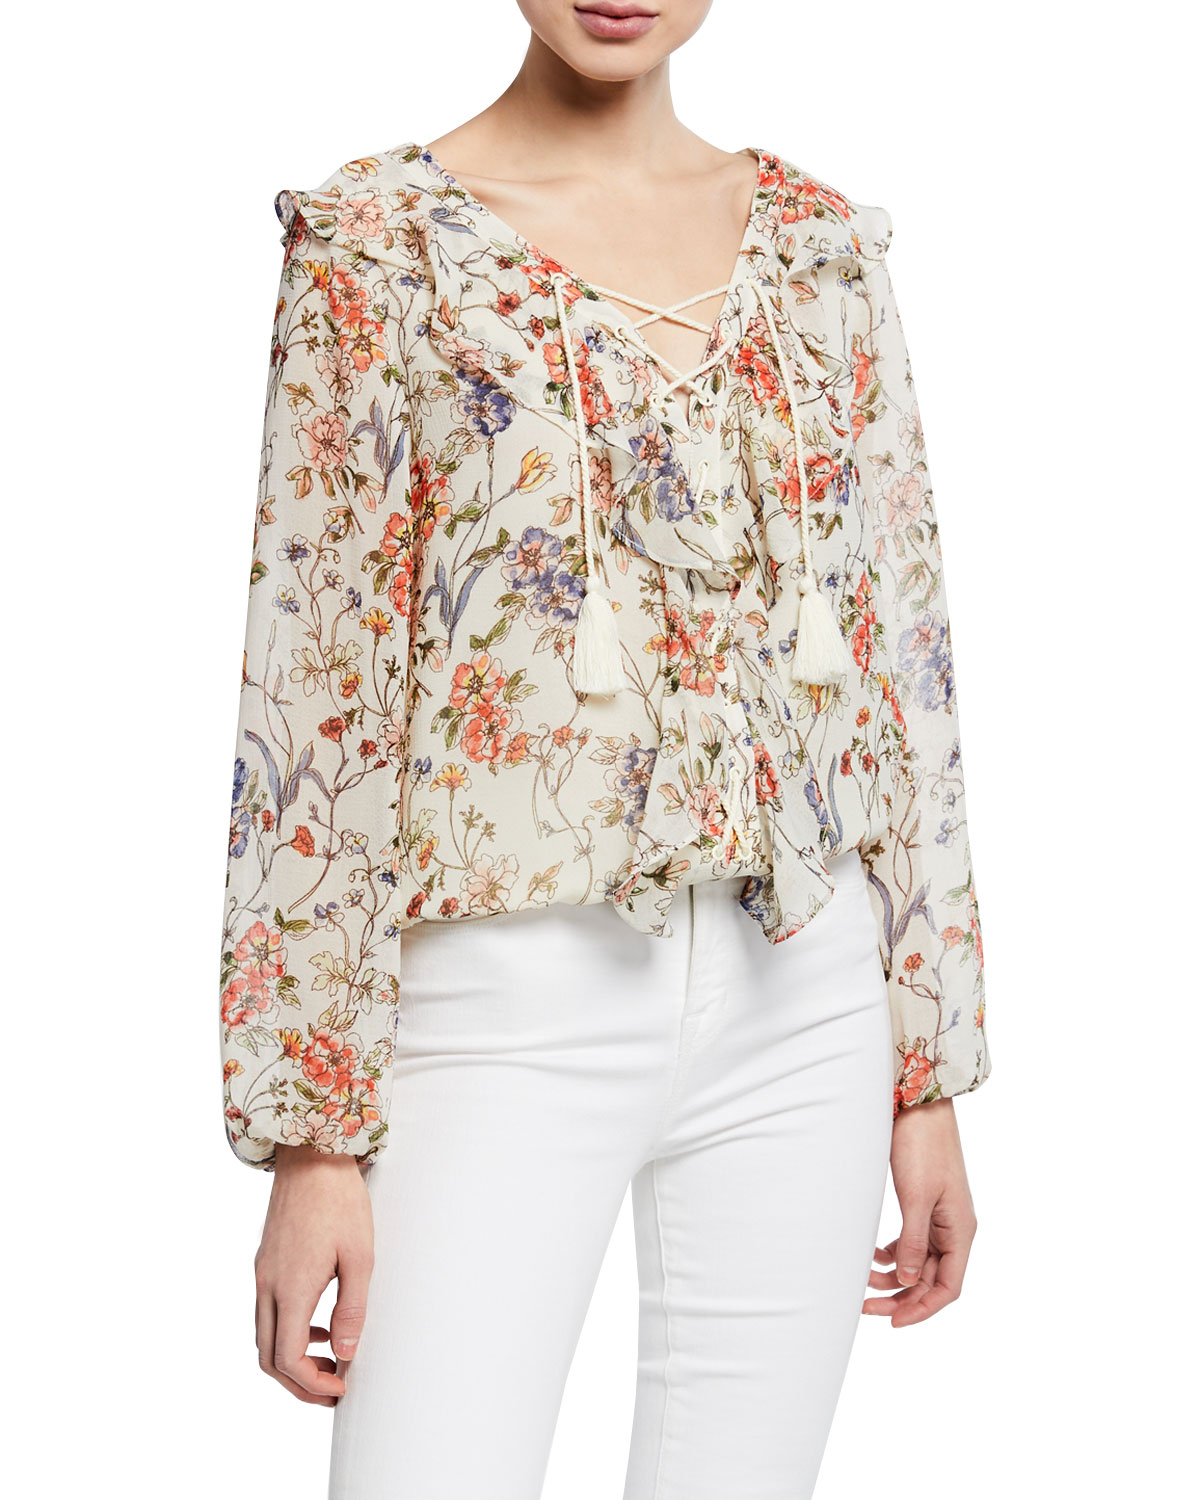 58dc8d51d4 Cupcakes and Cashmere Sveta Printed Lace-Up Blouse | Neiman Marcus